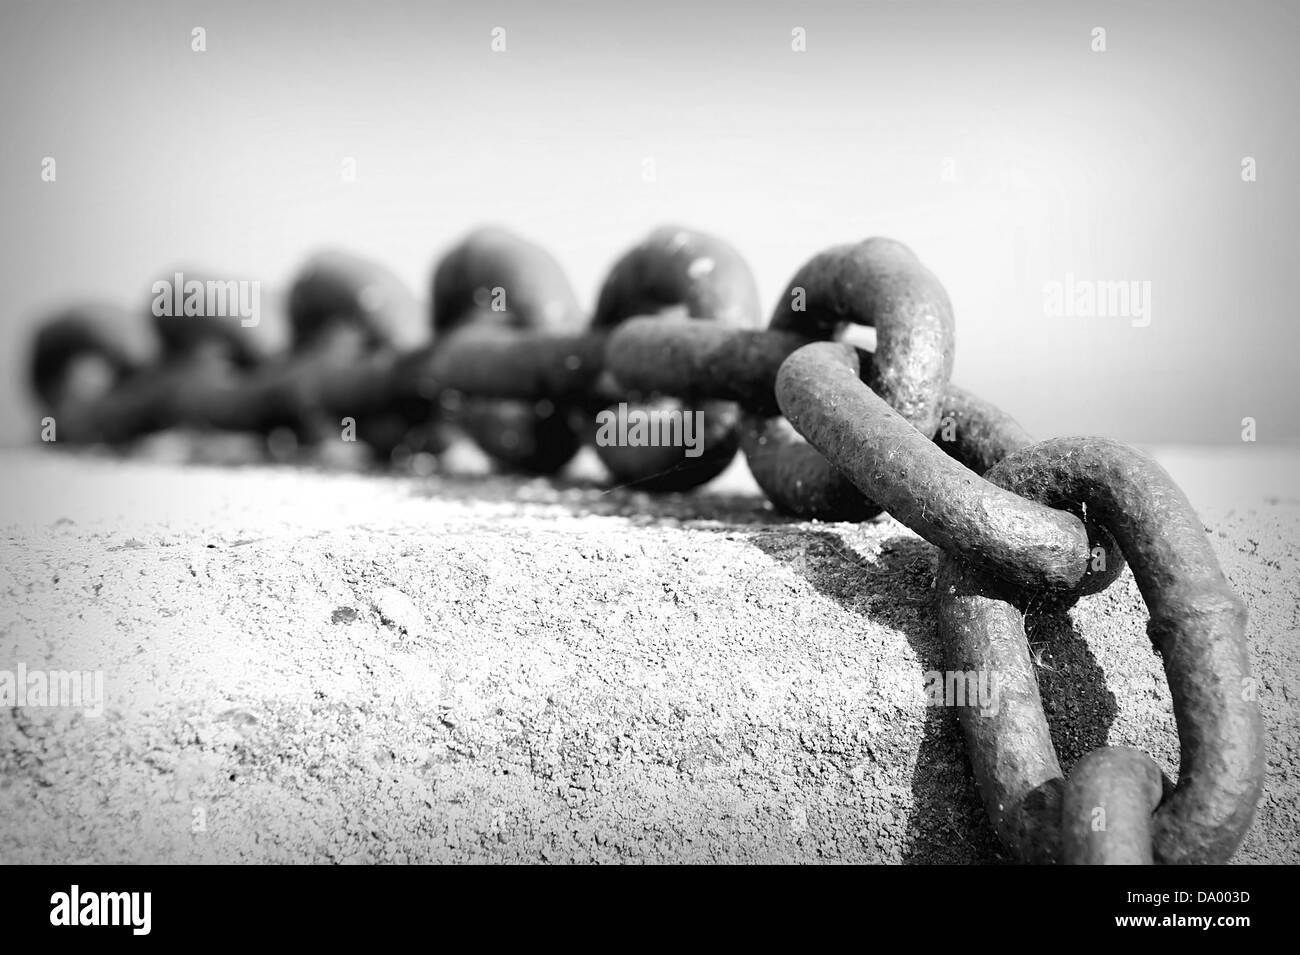 Close up of old rusty chain, shallow depth of field - Stock Image